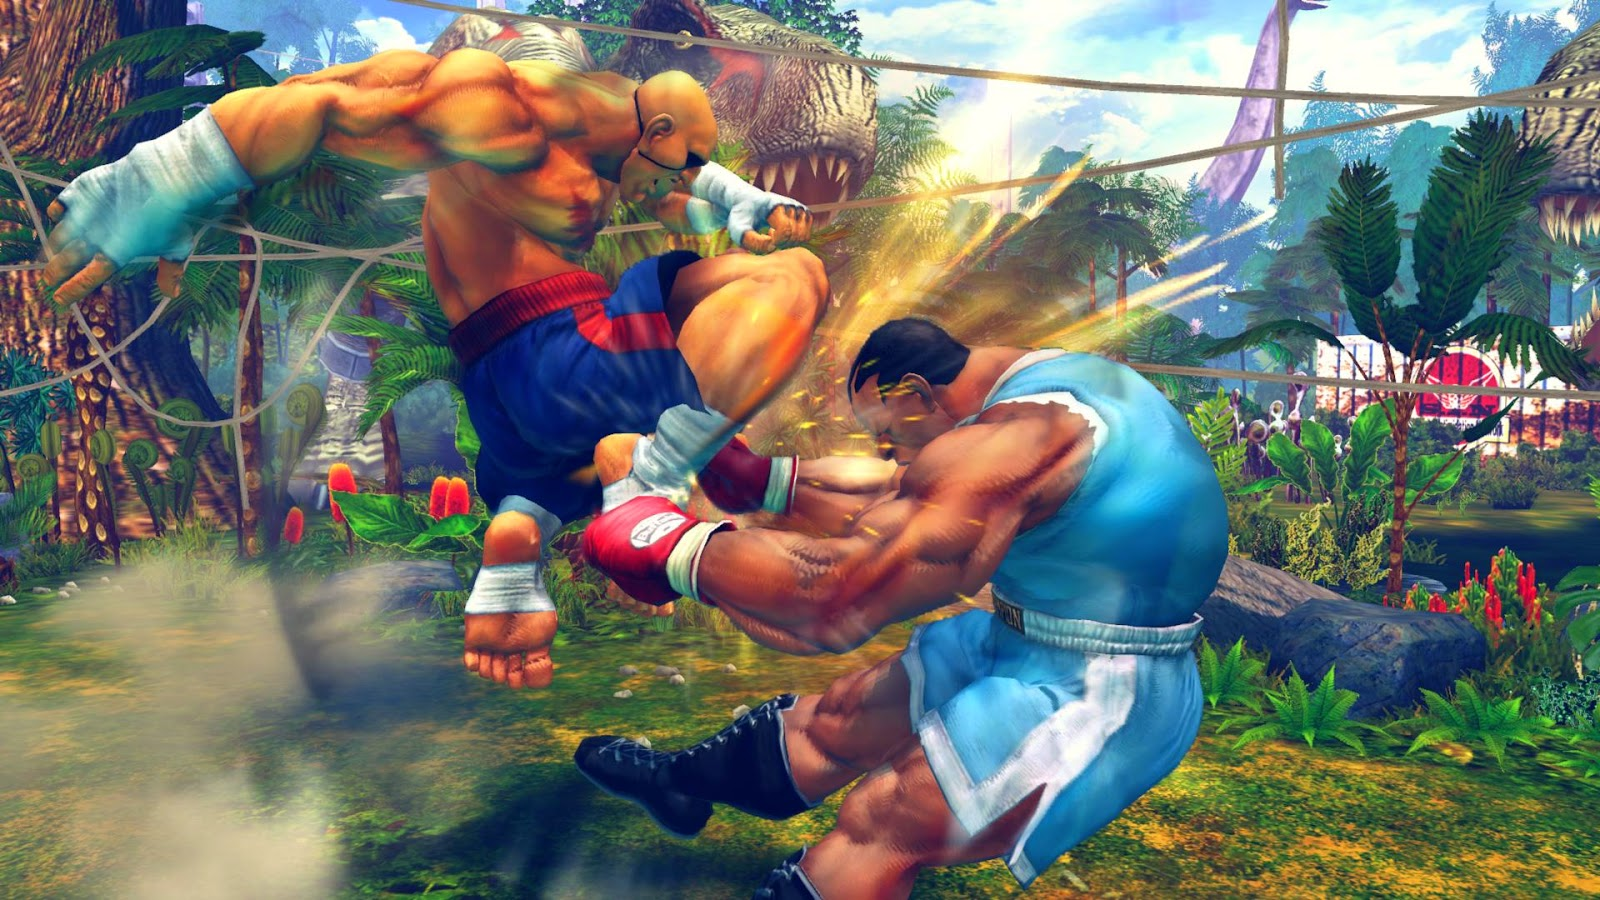 Ultra Street Fighter IV gameplay